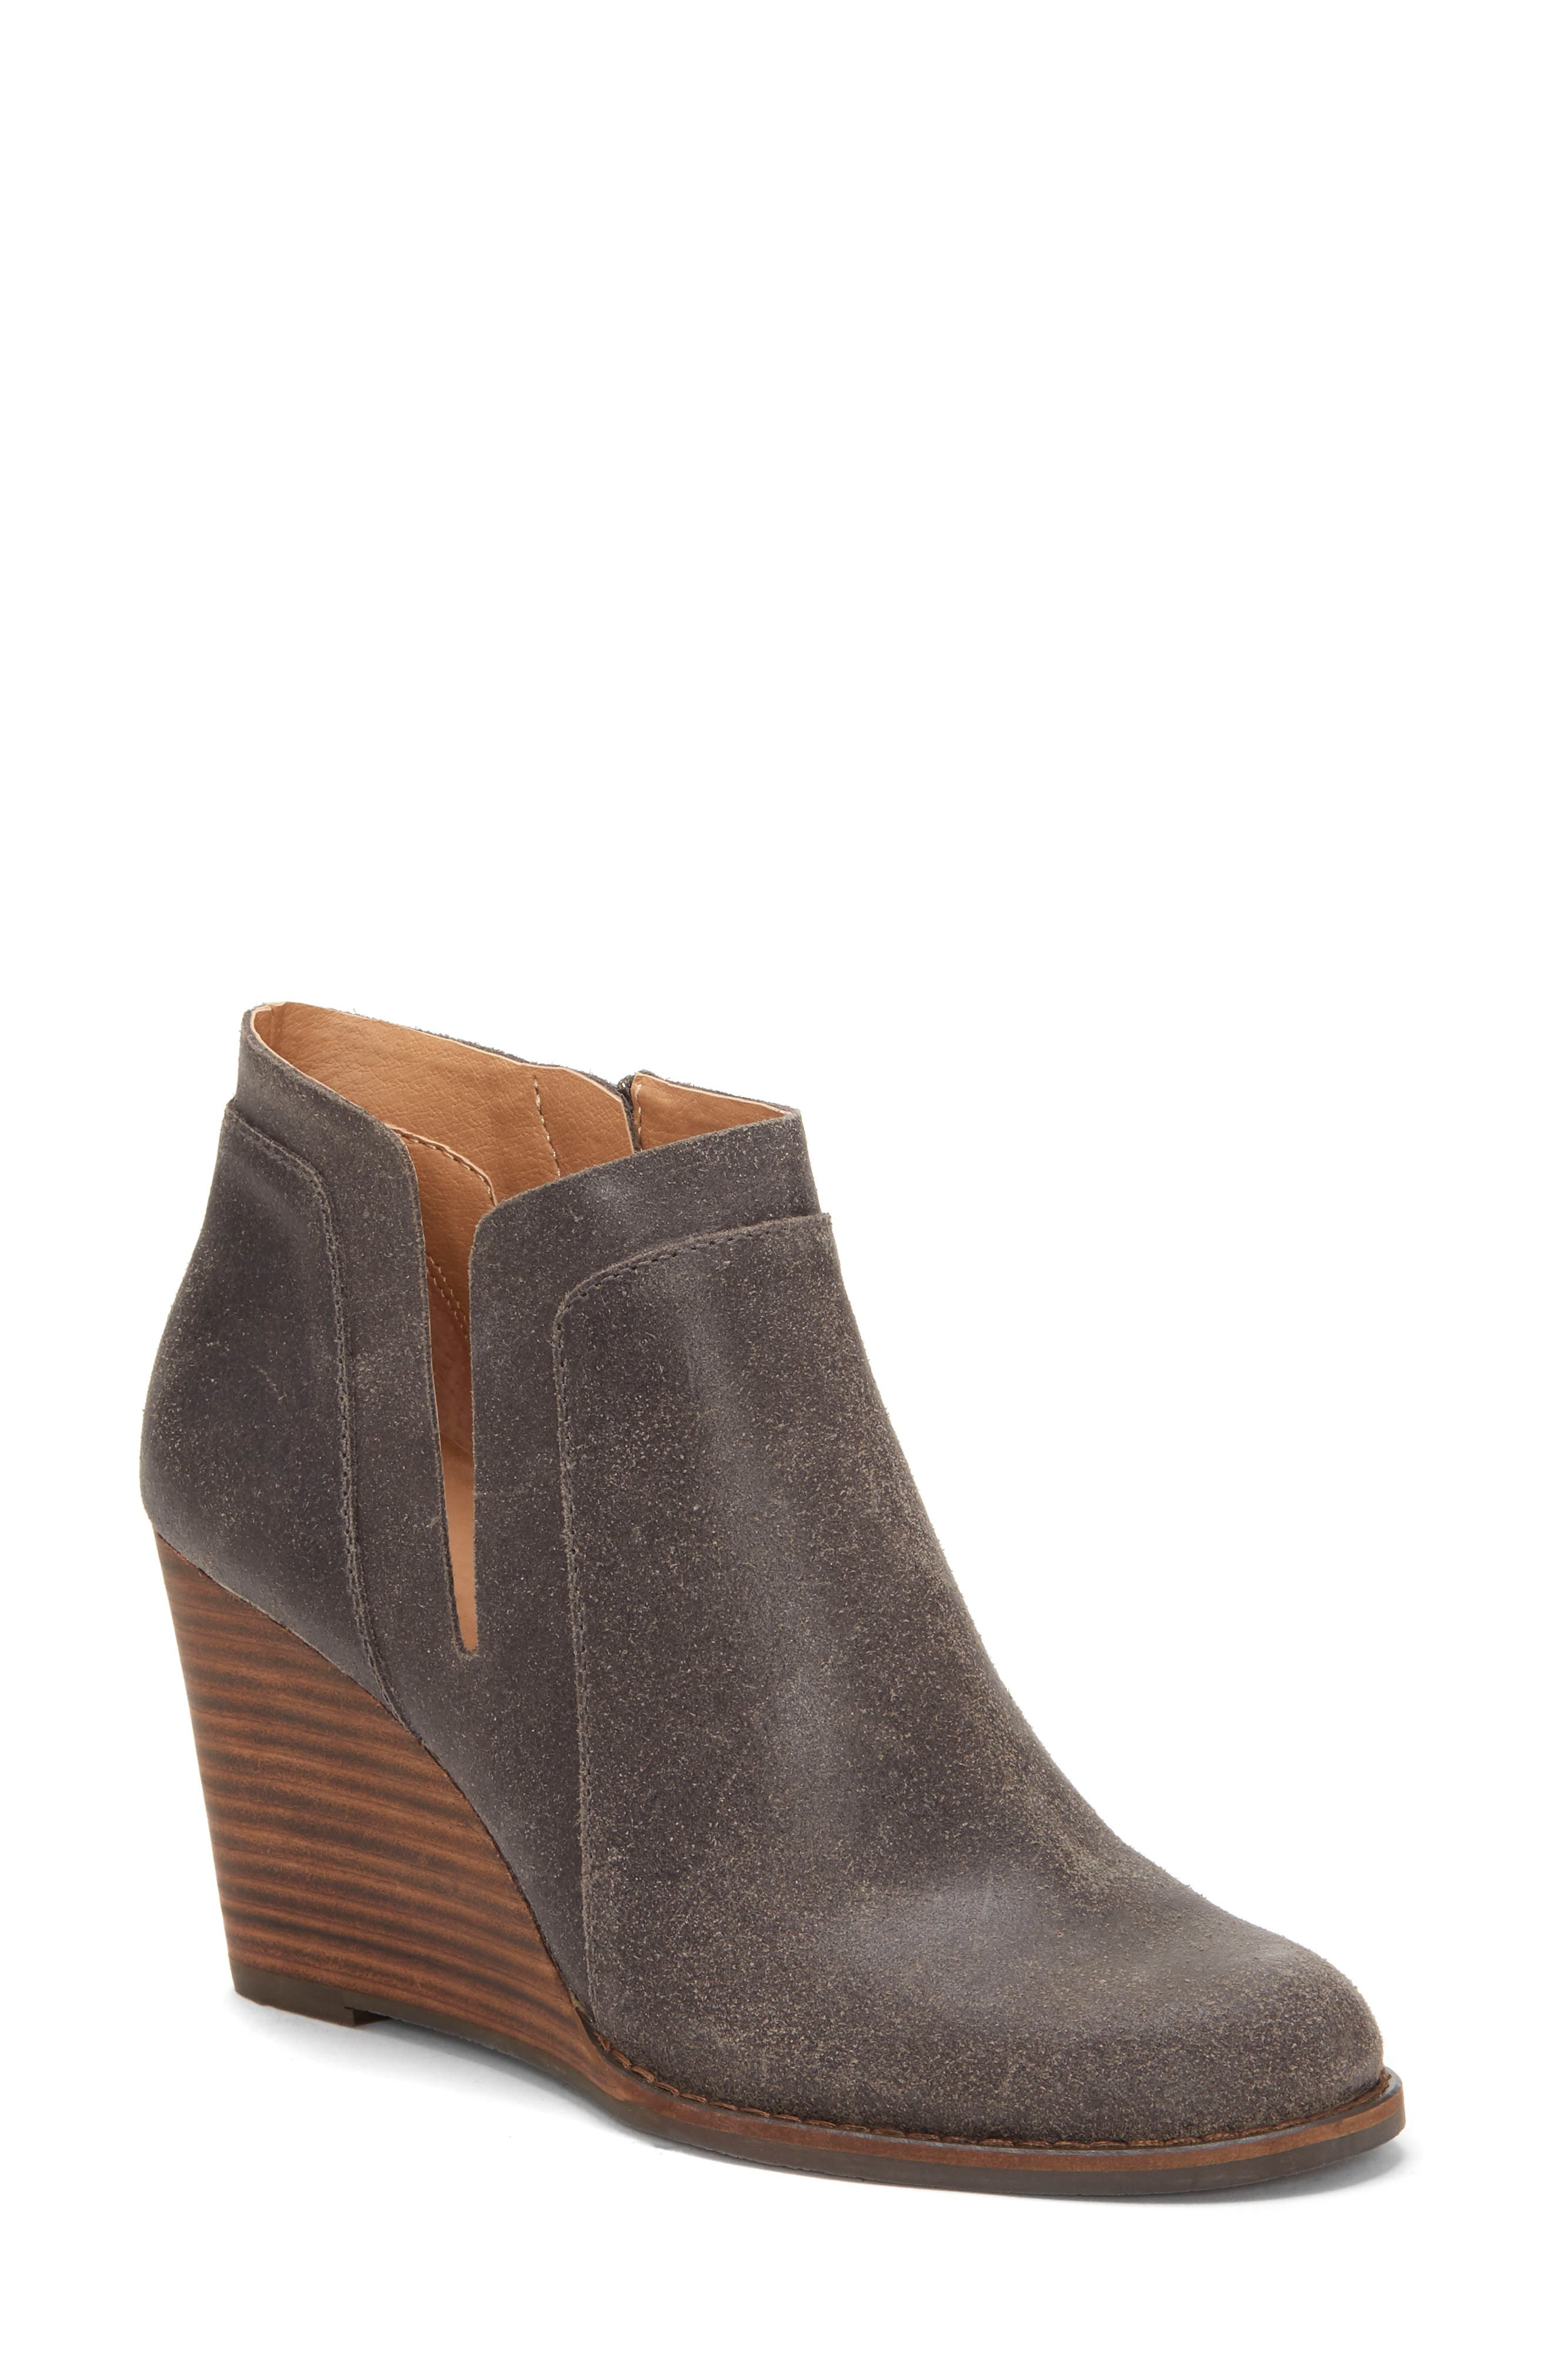 Yabba Wedge Bootie,                             Main thumbnail 1, color,                             STORM NUBUCK